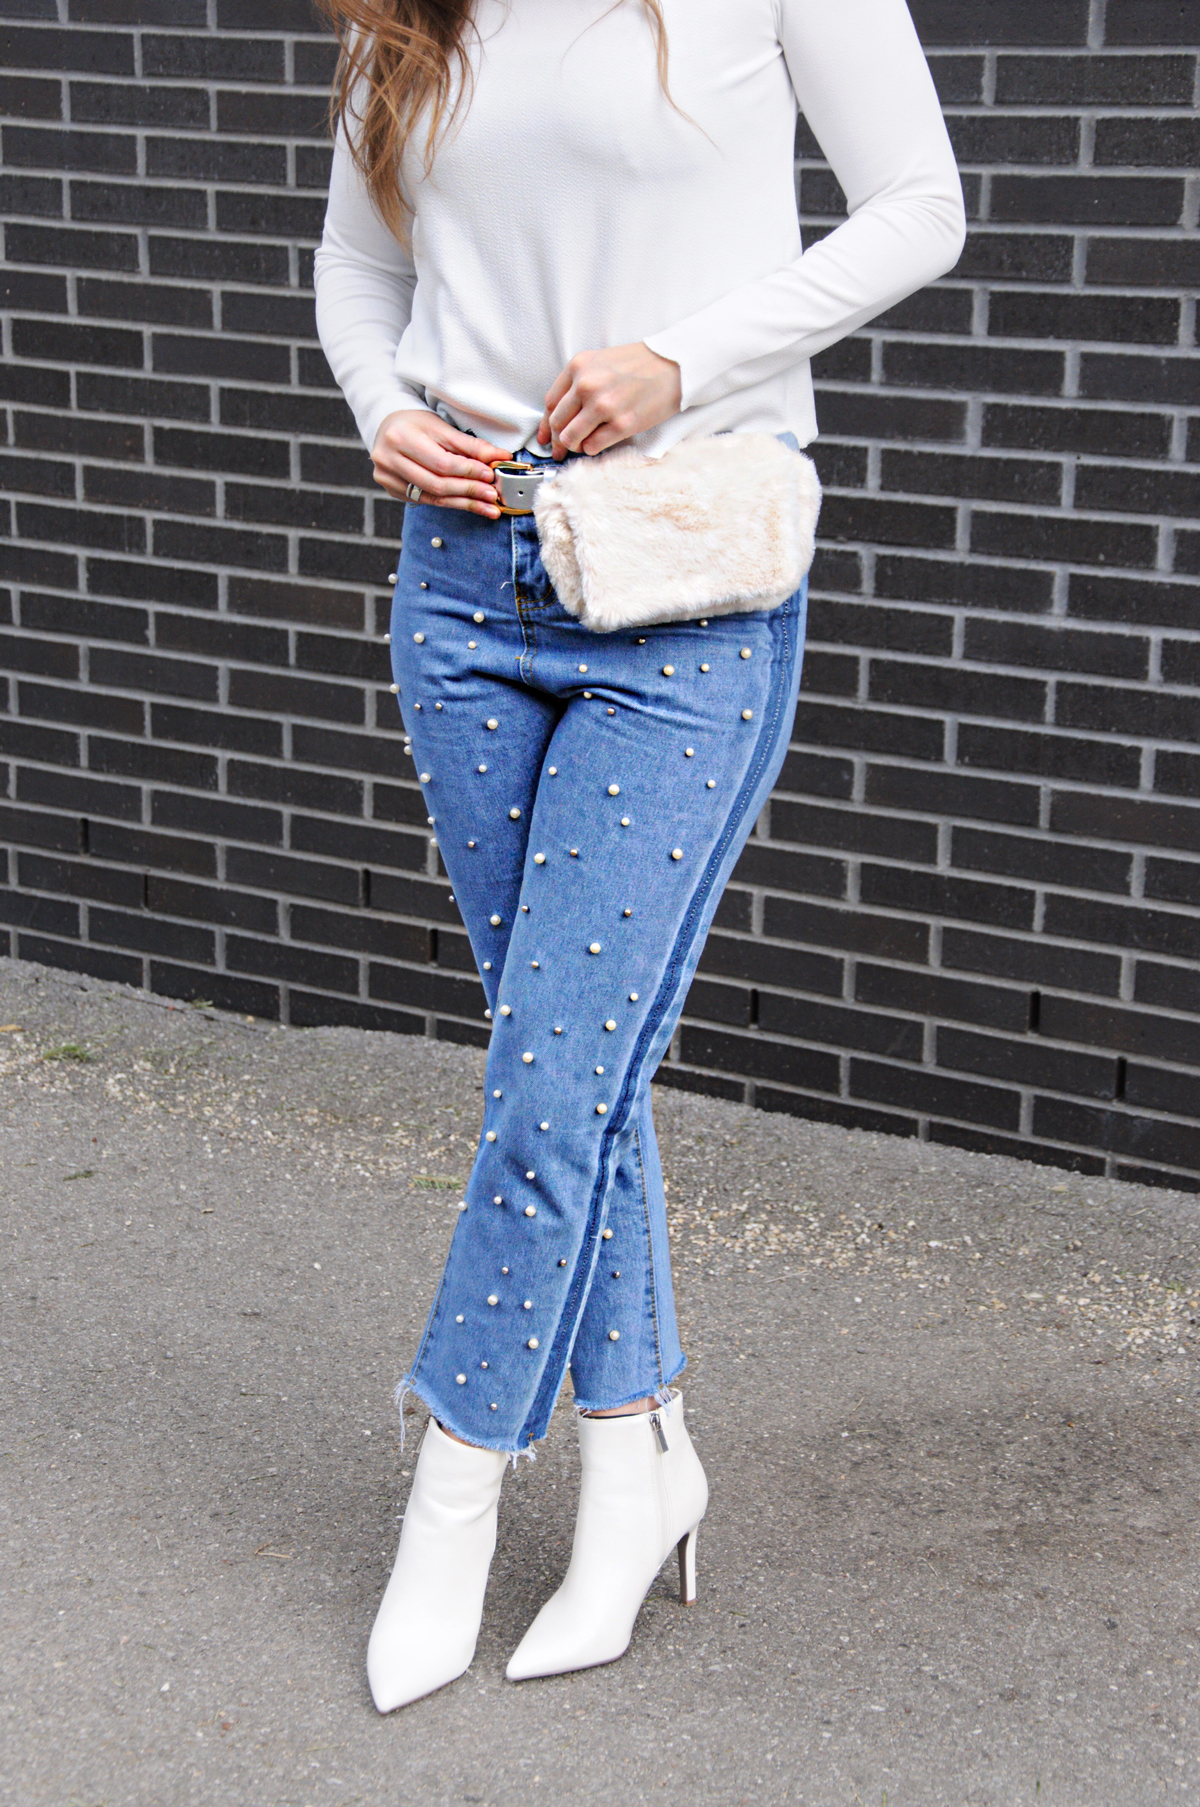 Swiss Blogger from Lucerne, Andrea Steiner give some amazing fashion tips on her blog Strawberries & Champagne about fanny packs and how to wear it.